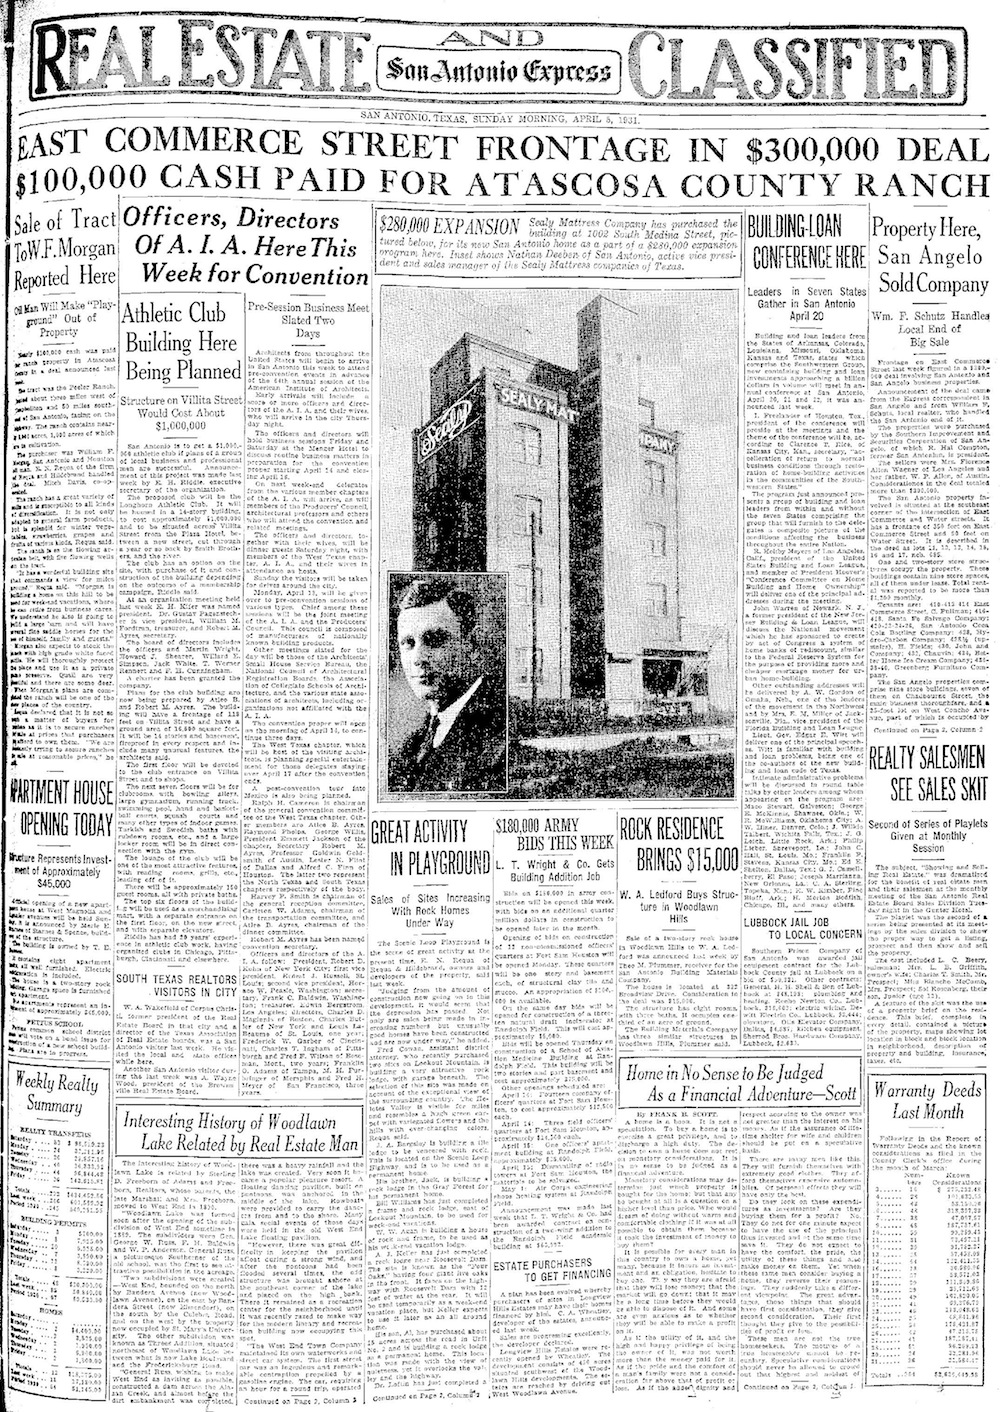 The real estate and classifieds section of the San Antonio Express News on April 5, 1931.